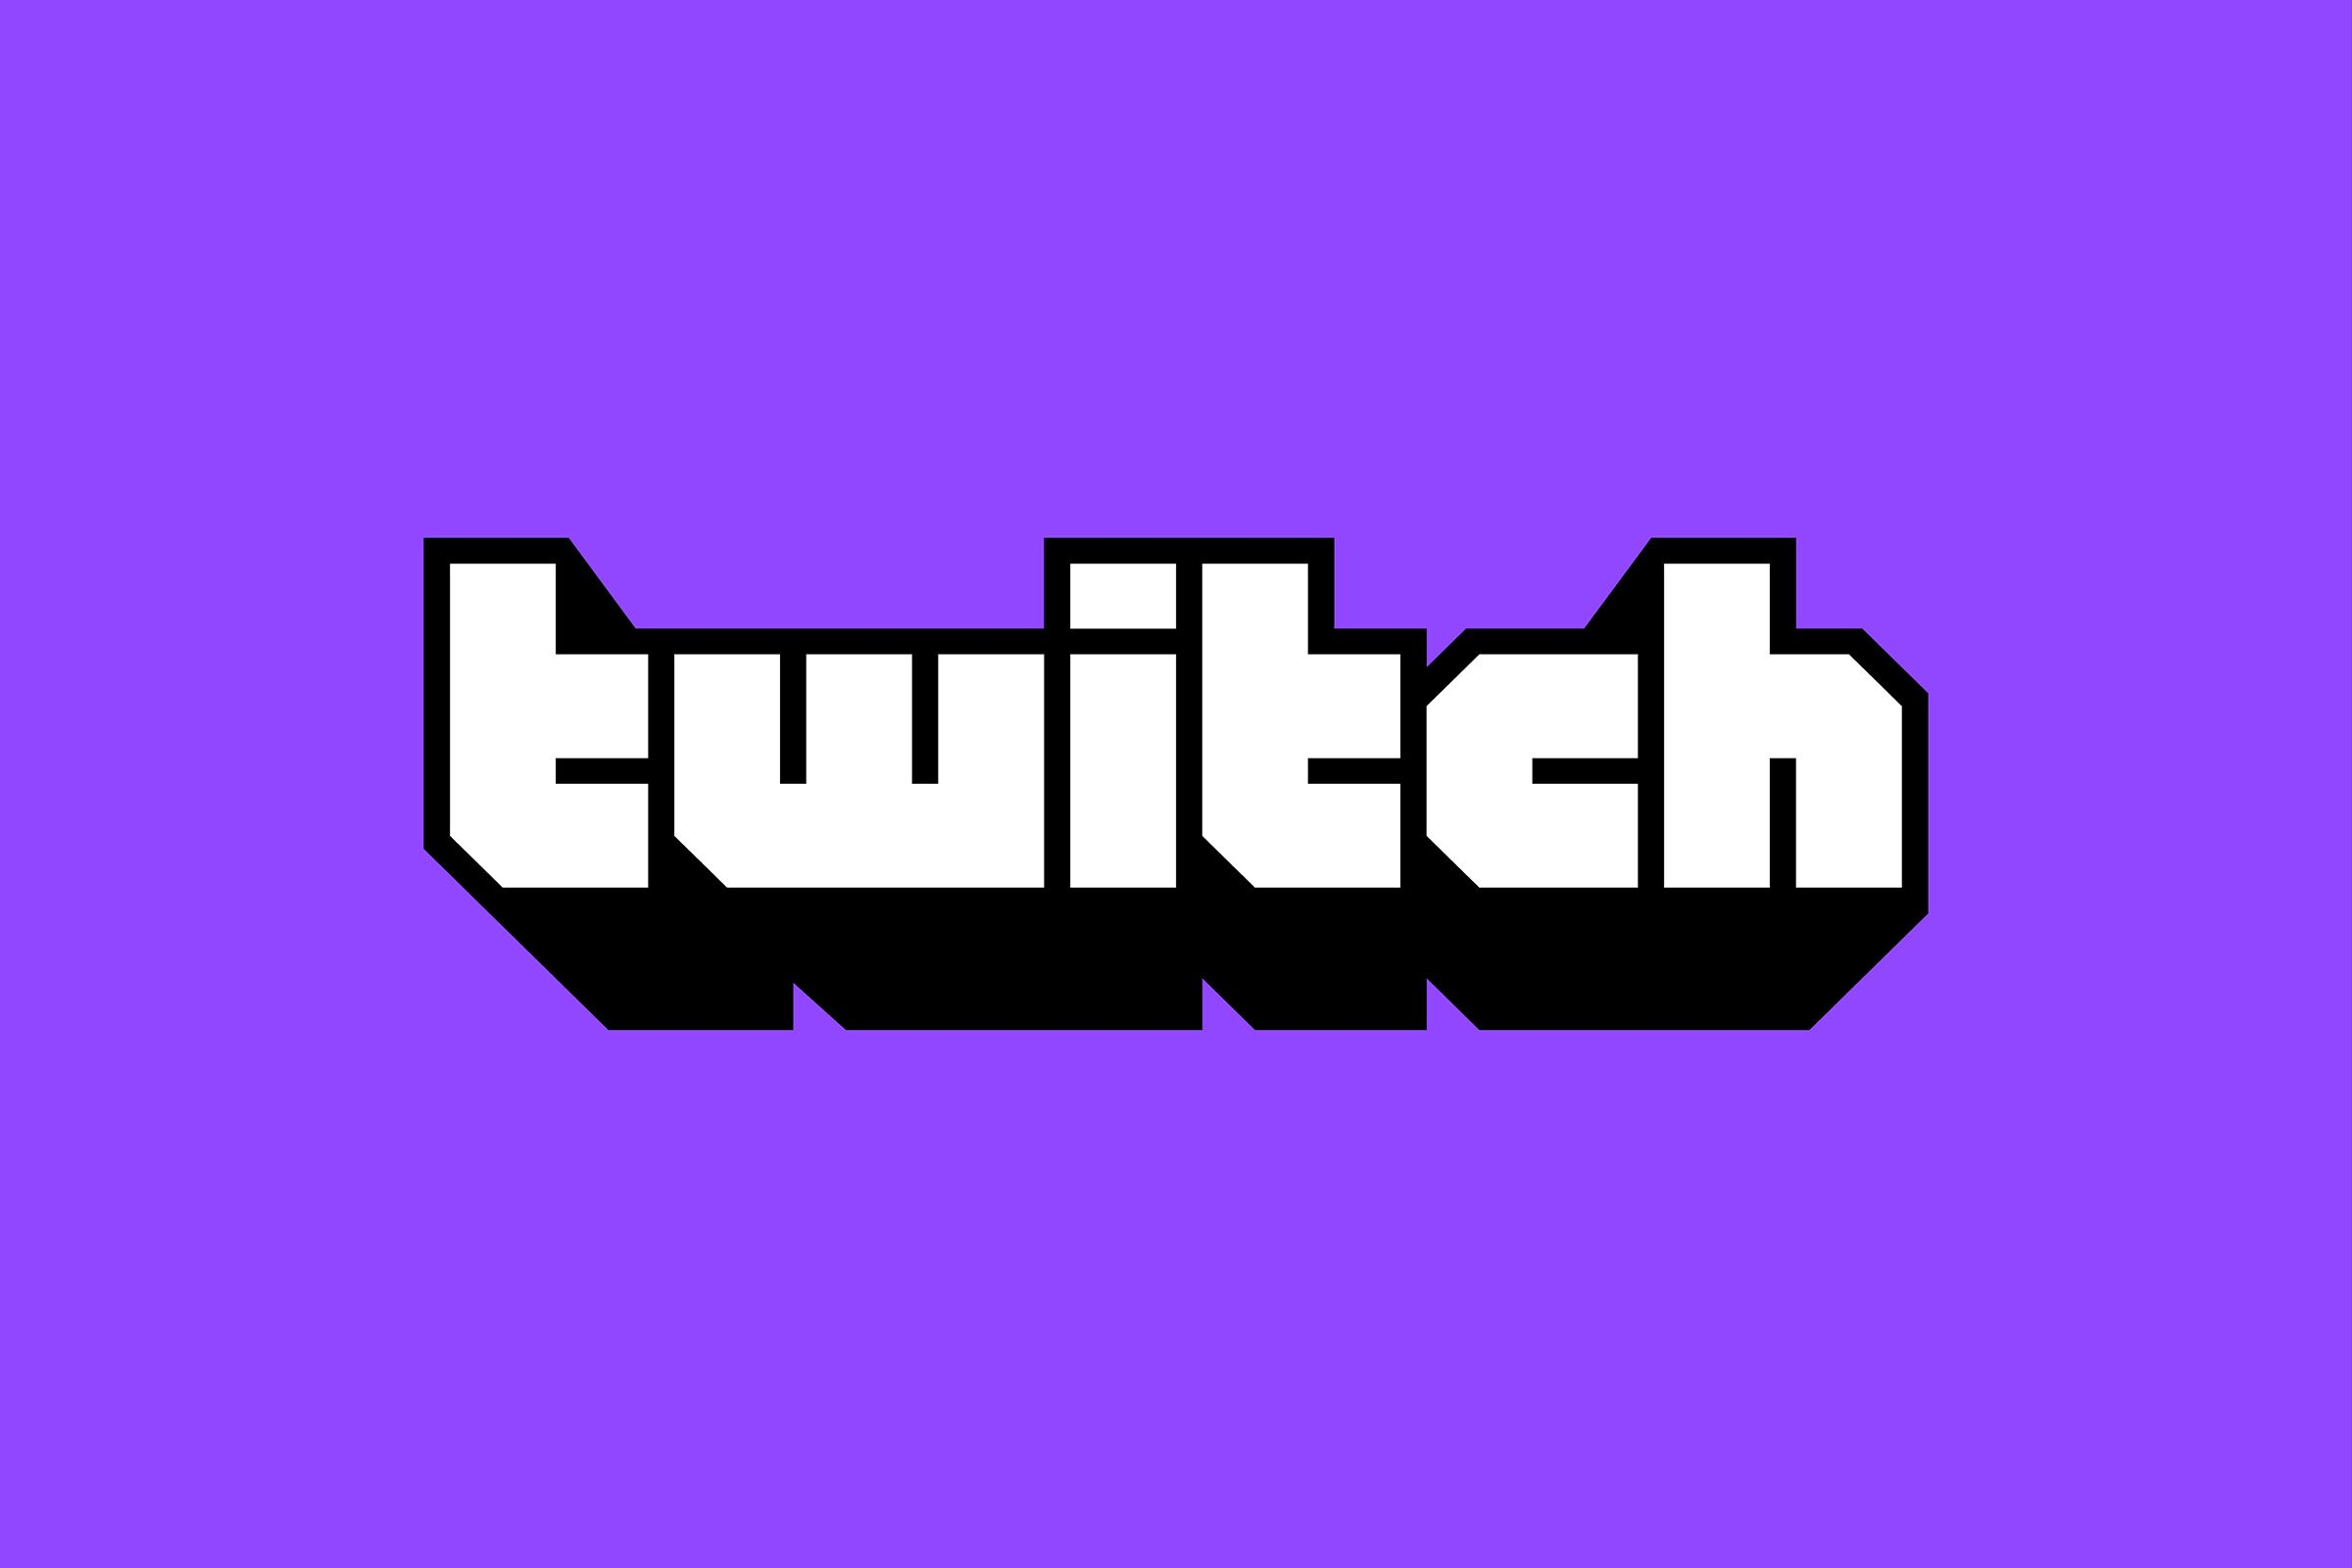 Top 10 most-watched games on Twitch in 2019